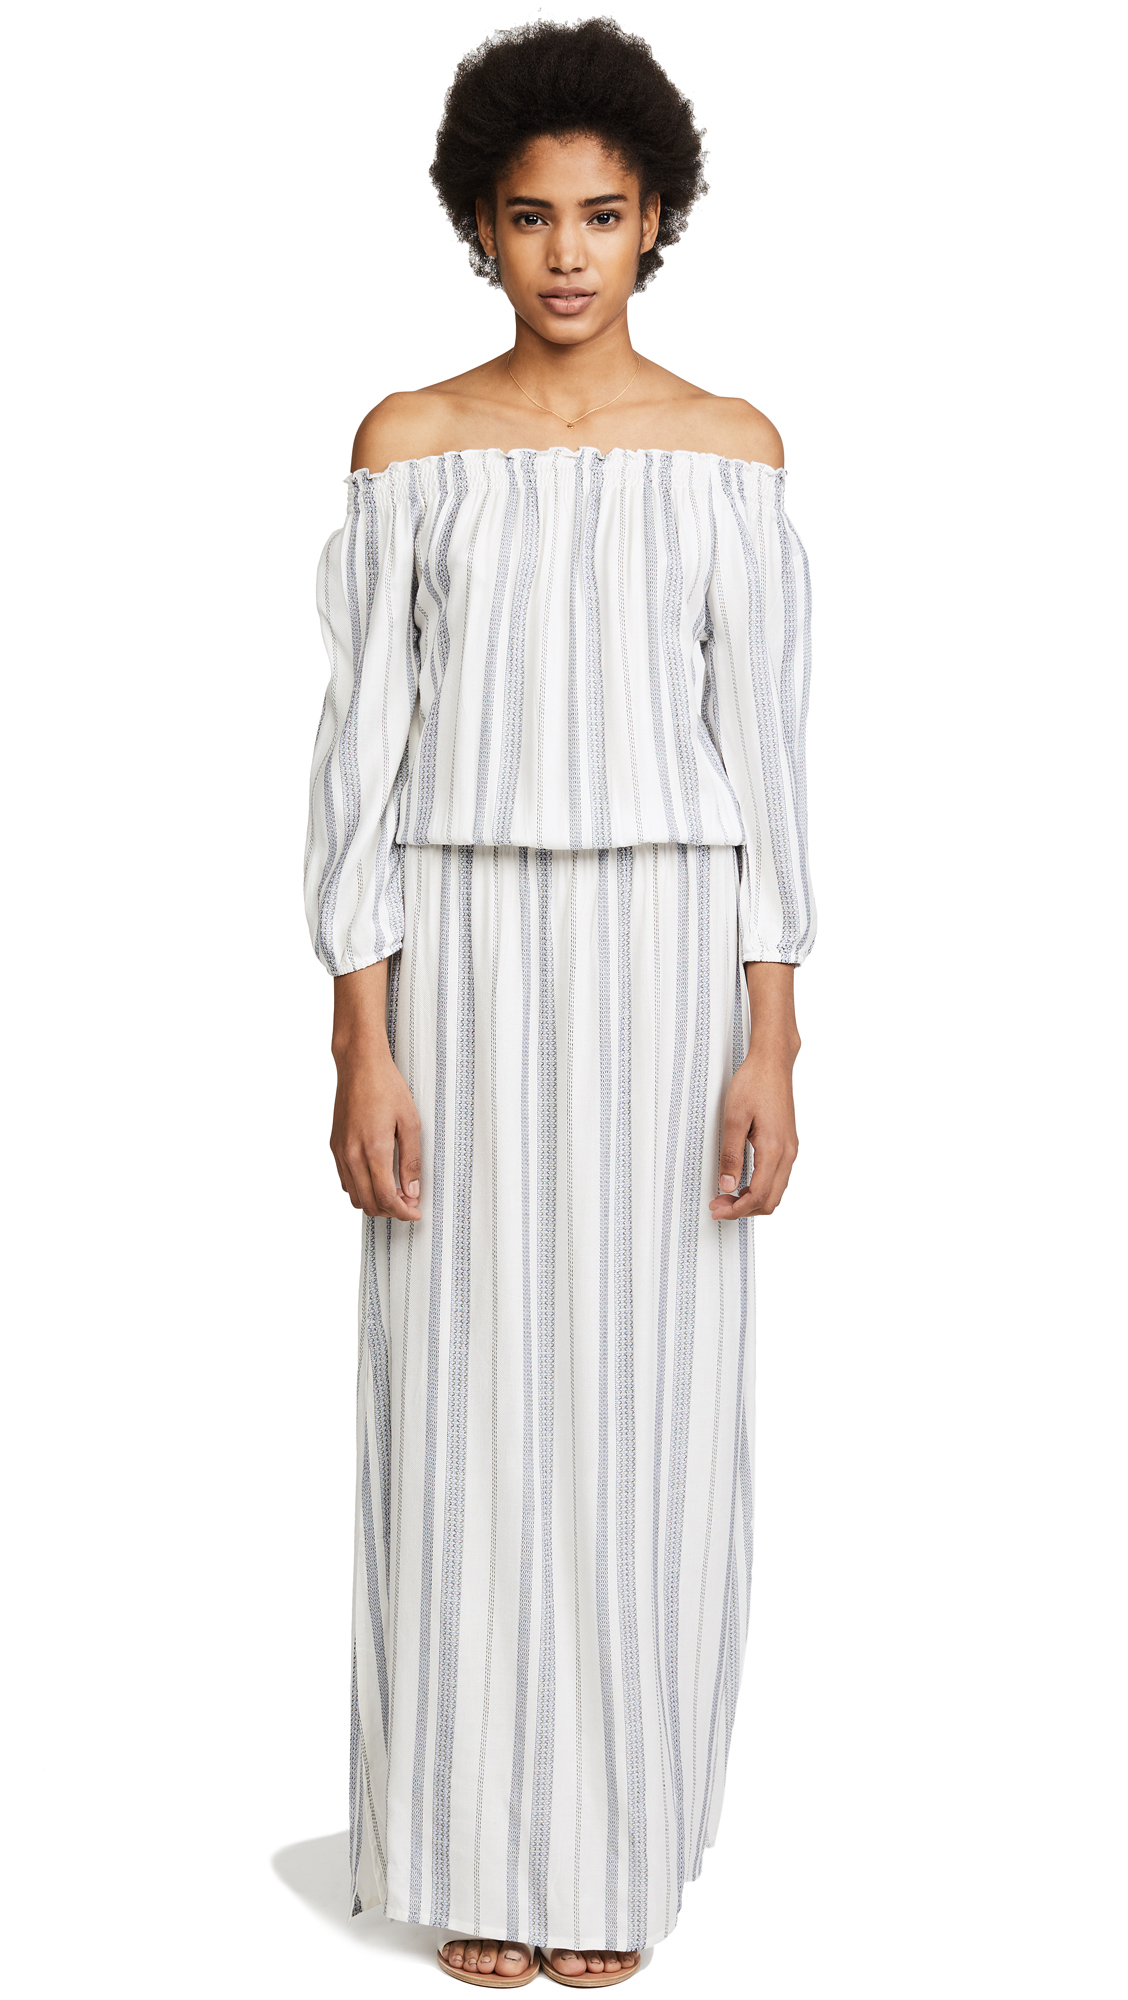 Melissa Odabash Amber Dress - Cream Stripe